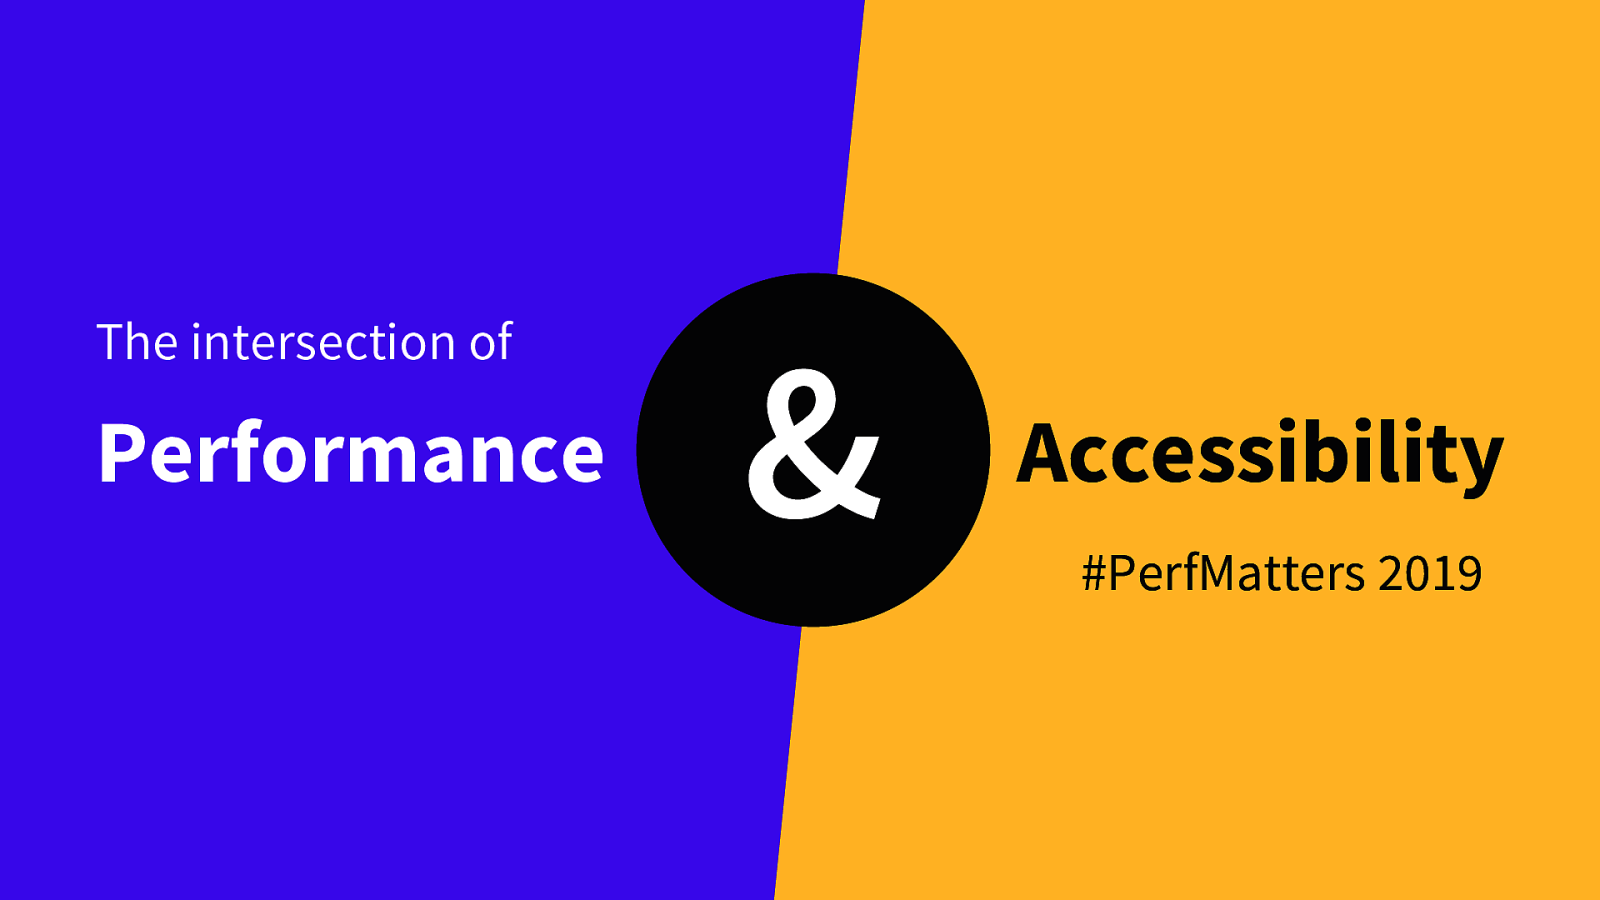 The intersection of performance and accessibility